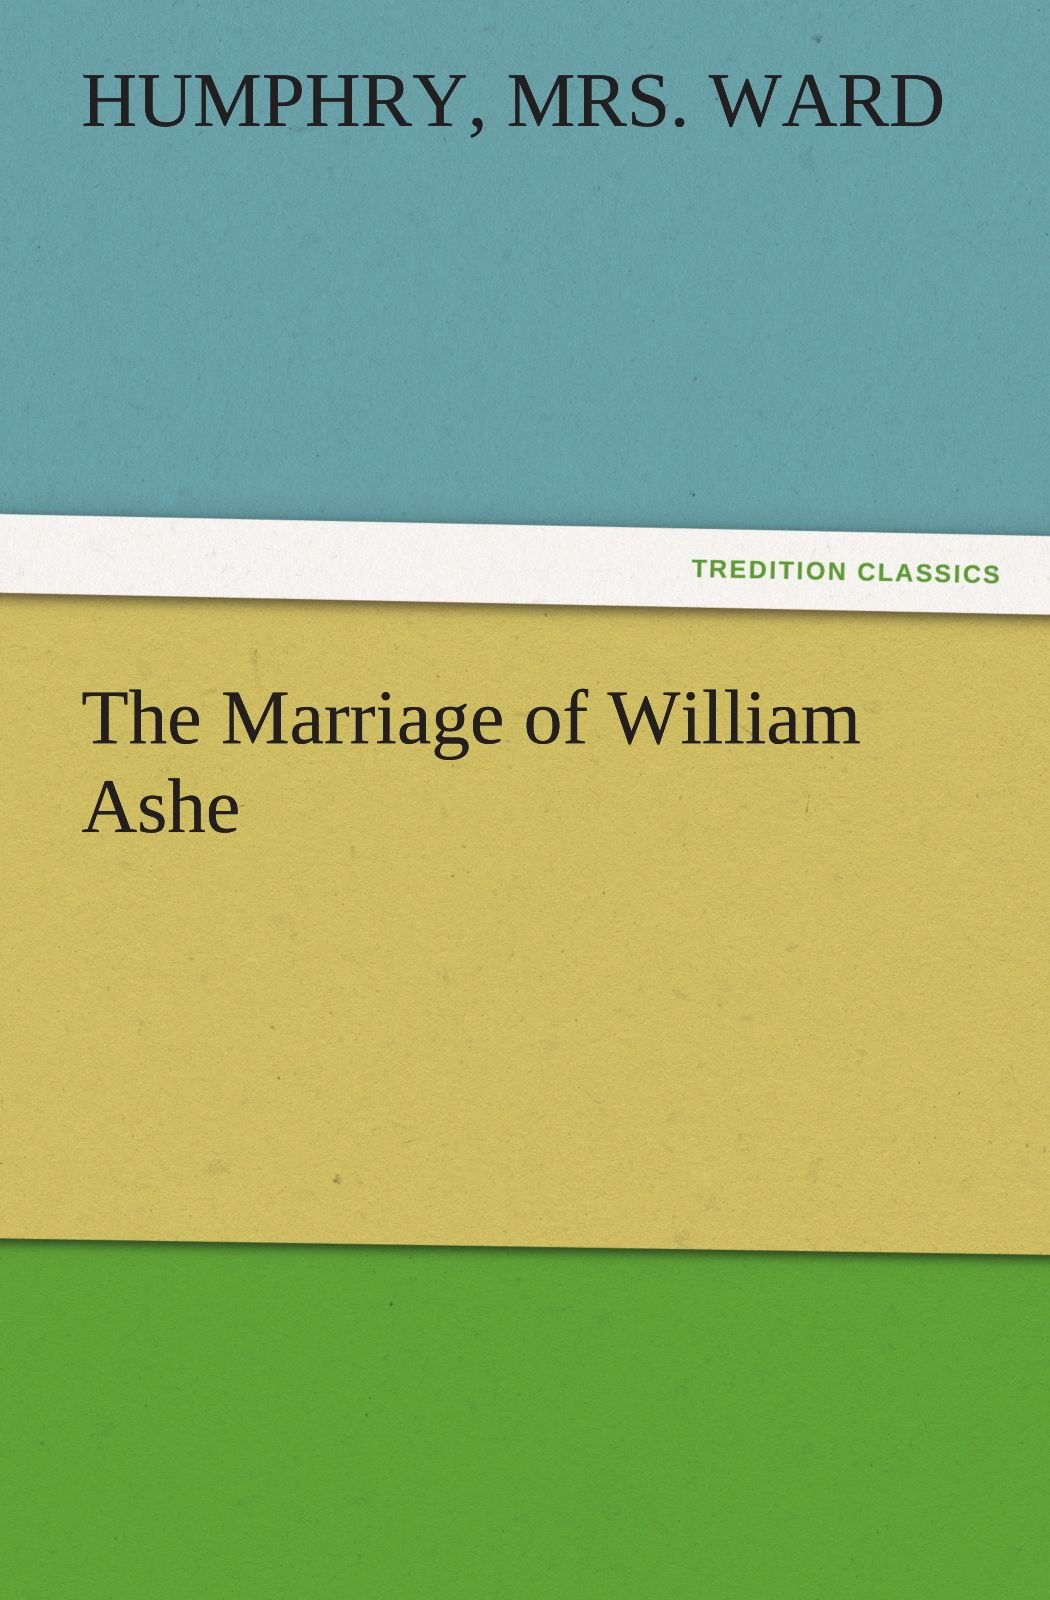 Download The Marriage of William Ashe (TREDITION CLASSICS) PDF